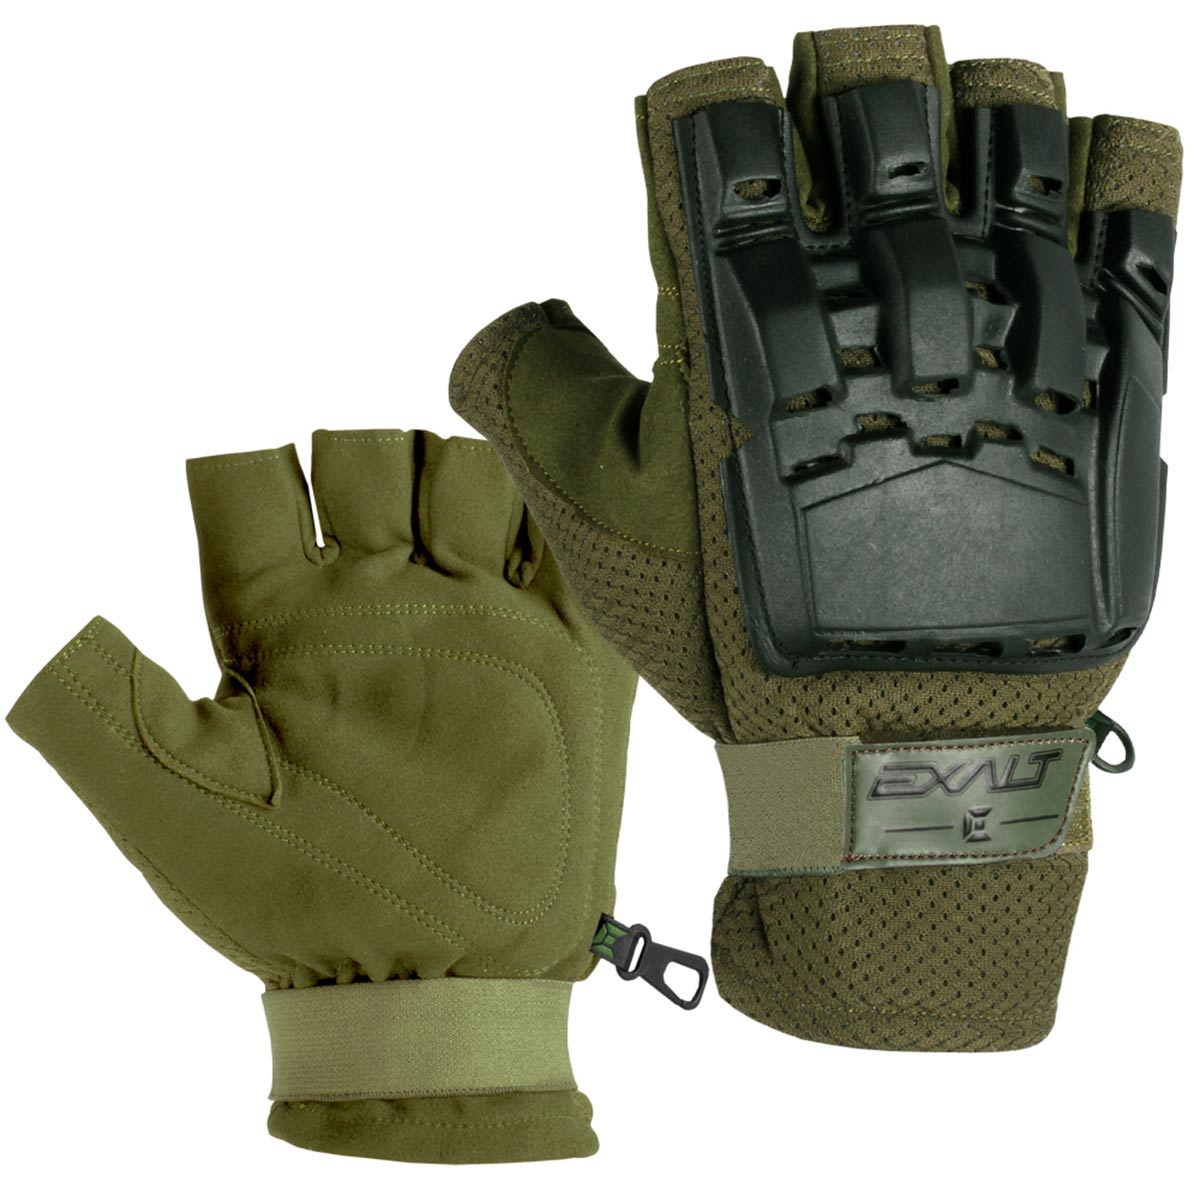 Exalt Paintball Hardshell Gloves - Hard Back Fingerless - Olive